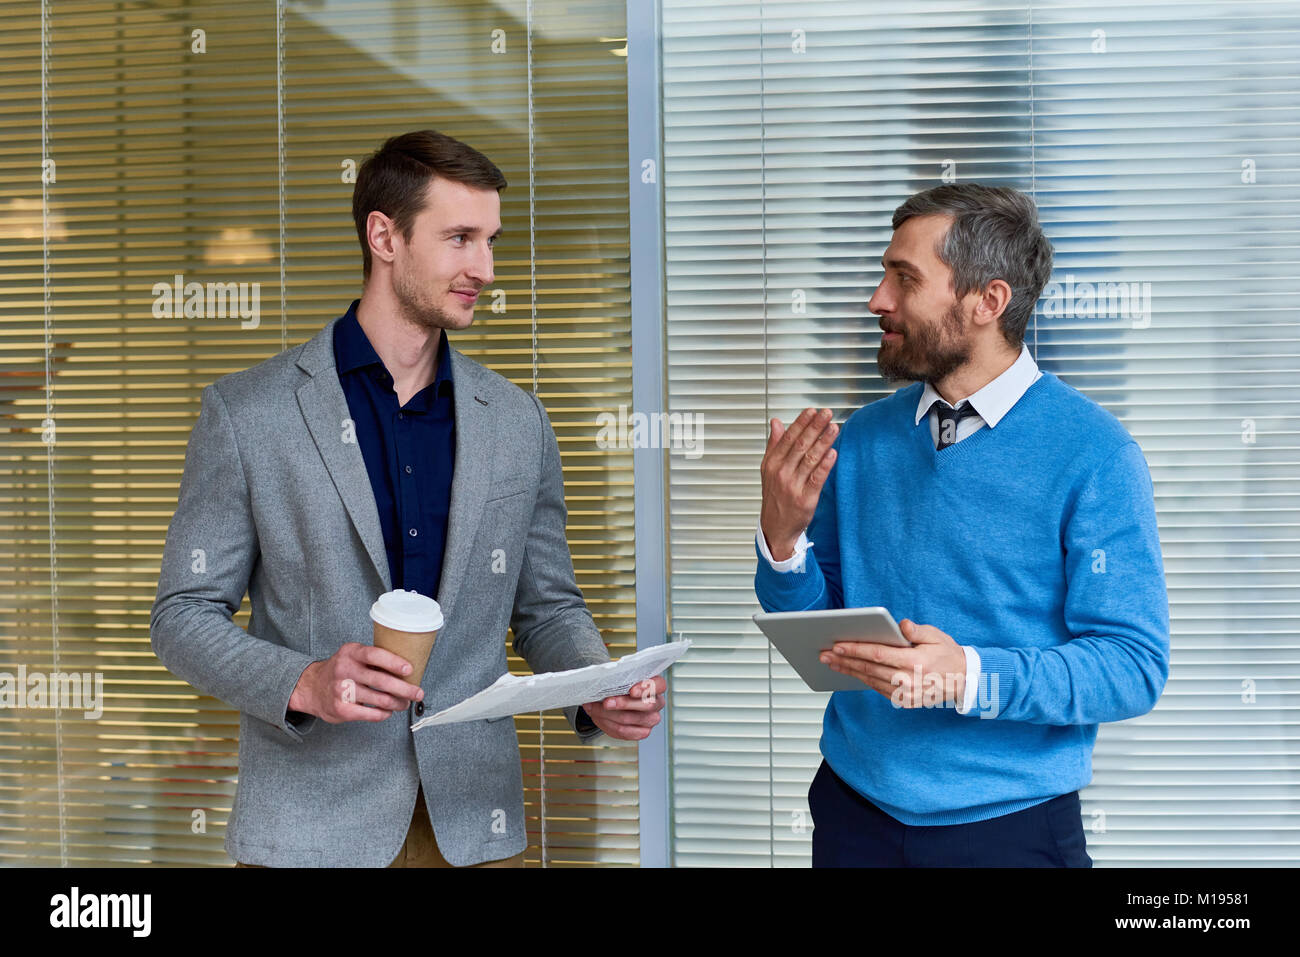 Business People Discussing News in Office - Stock Image